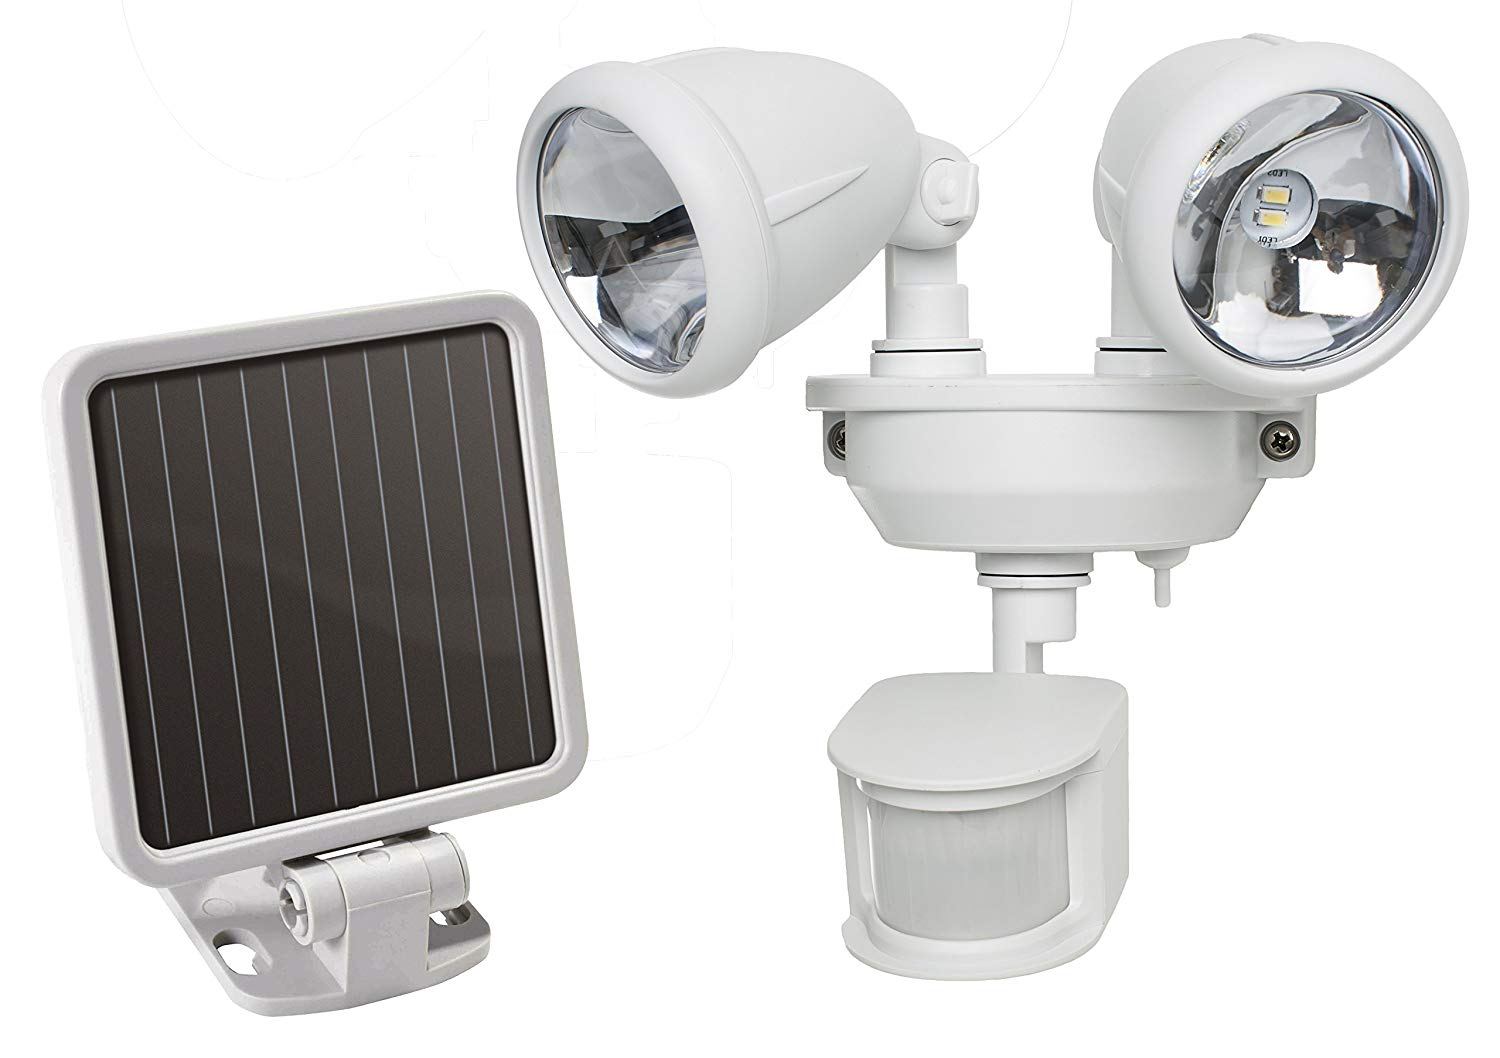 hight resolution of maxsa motion activated security light